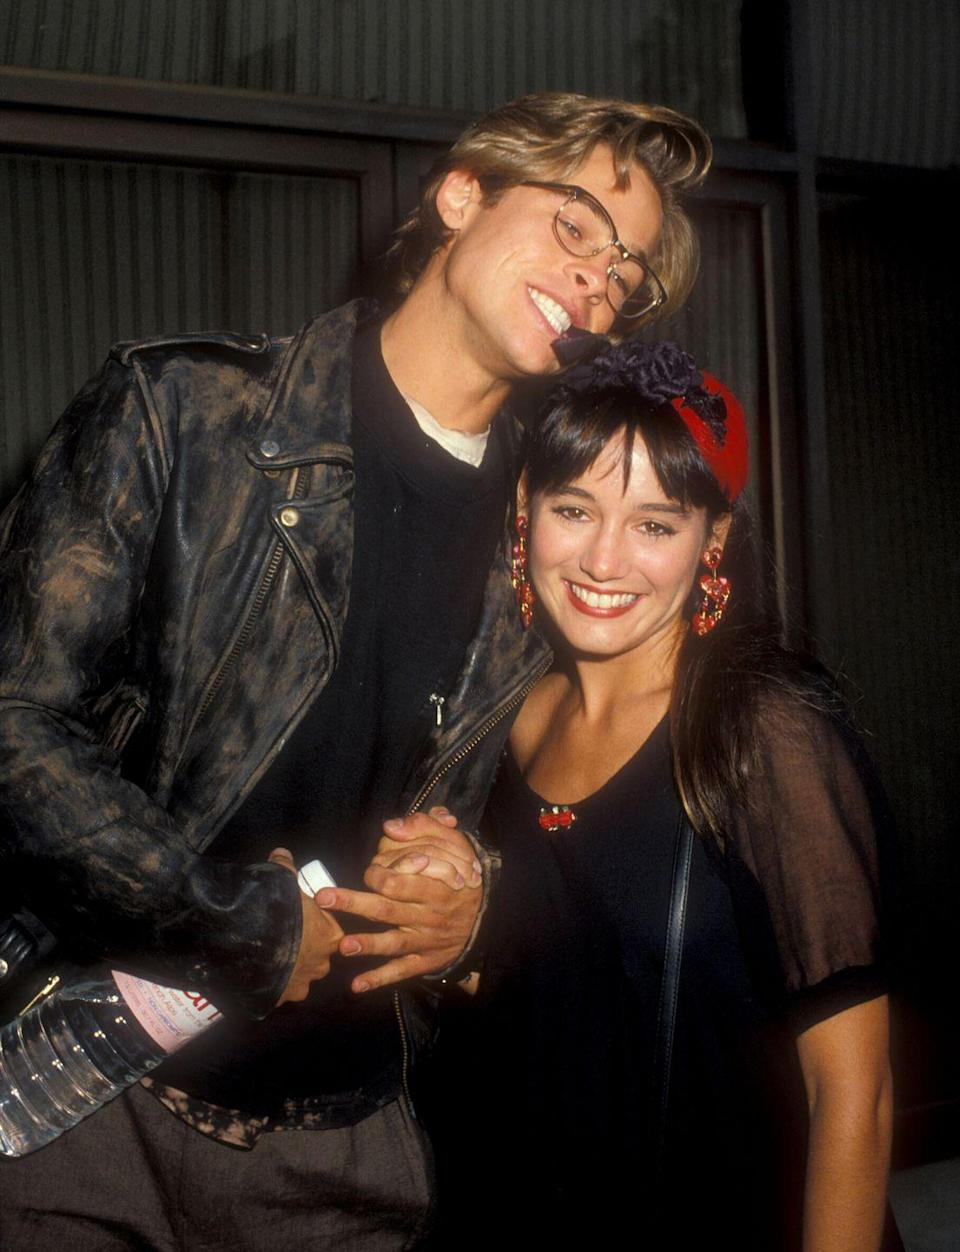 <p>In June 1988, Pitt stepped out with a new girlfriend, Jill Schoelen, at the Los Angeles premiere of <em>Red Heat</em>. The couple met on the set of <em>Cutting Class</em>, making it Pitt's second (but certainly not last) time he fell in love with a costar.</p>